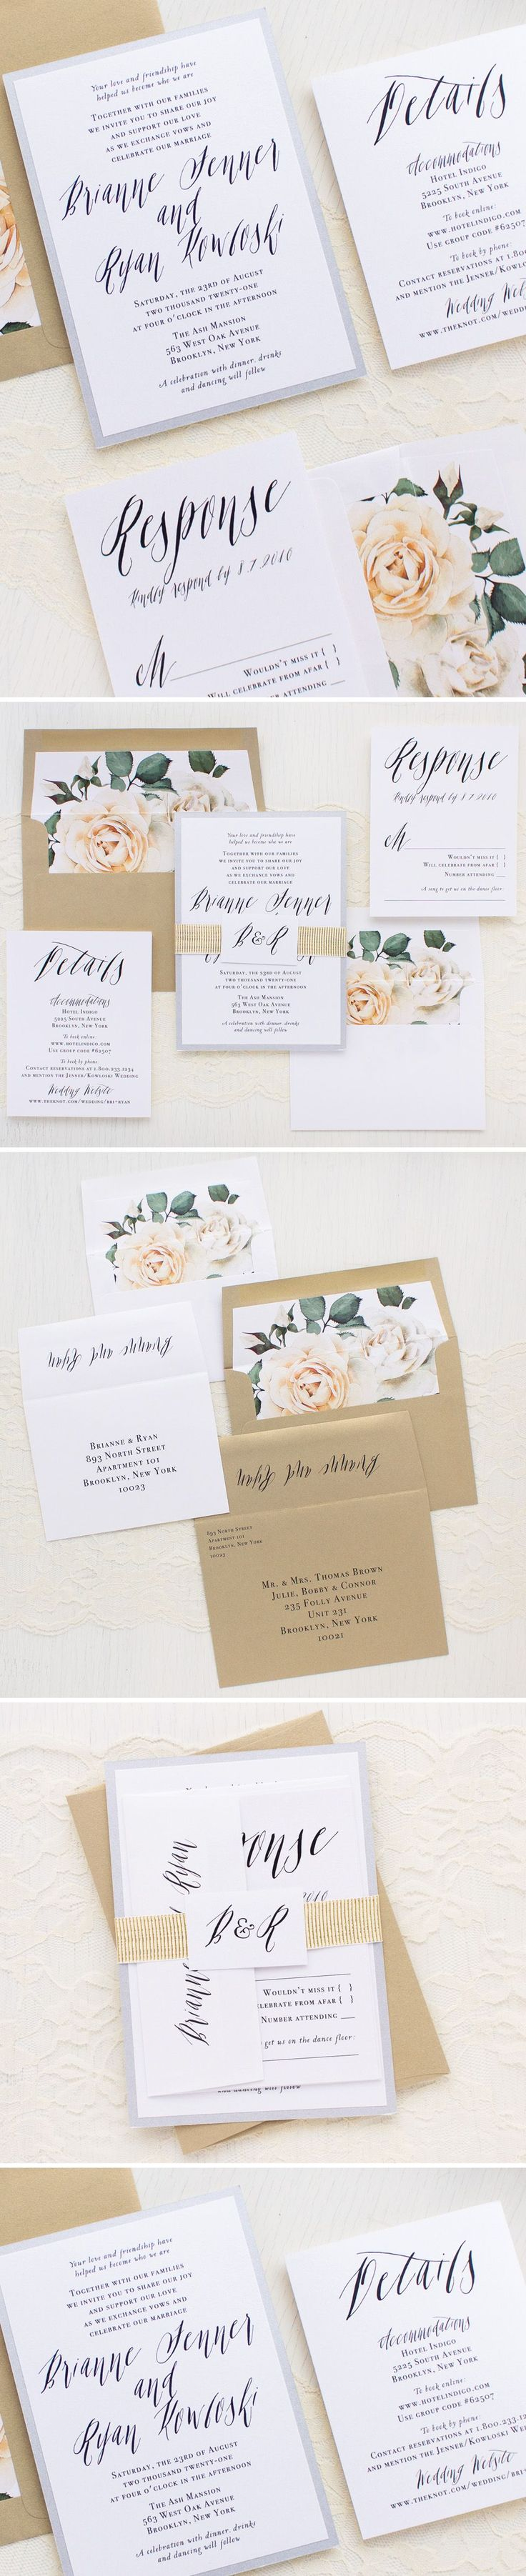 Modern Calligraphy wedding invitations are layered with romantic script fonts, shimmery white paper, hand crafted envelope liners and bundled with a monogram tag and luxe gold ribbed ribbon. Sleek and classy, they'll set an elegant tone for your sophisticated nuptials.